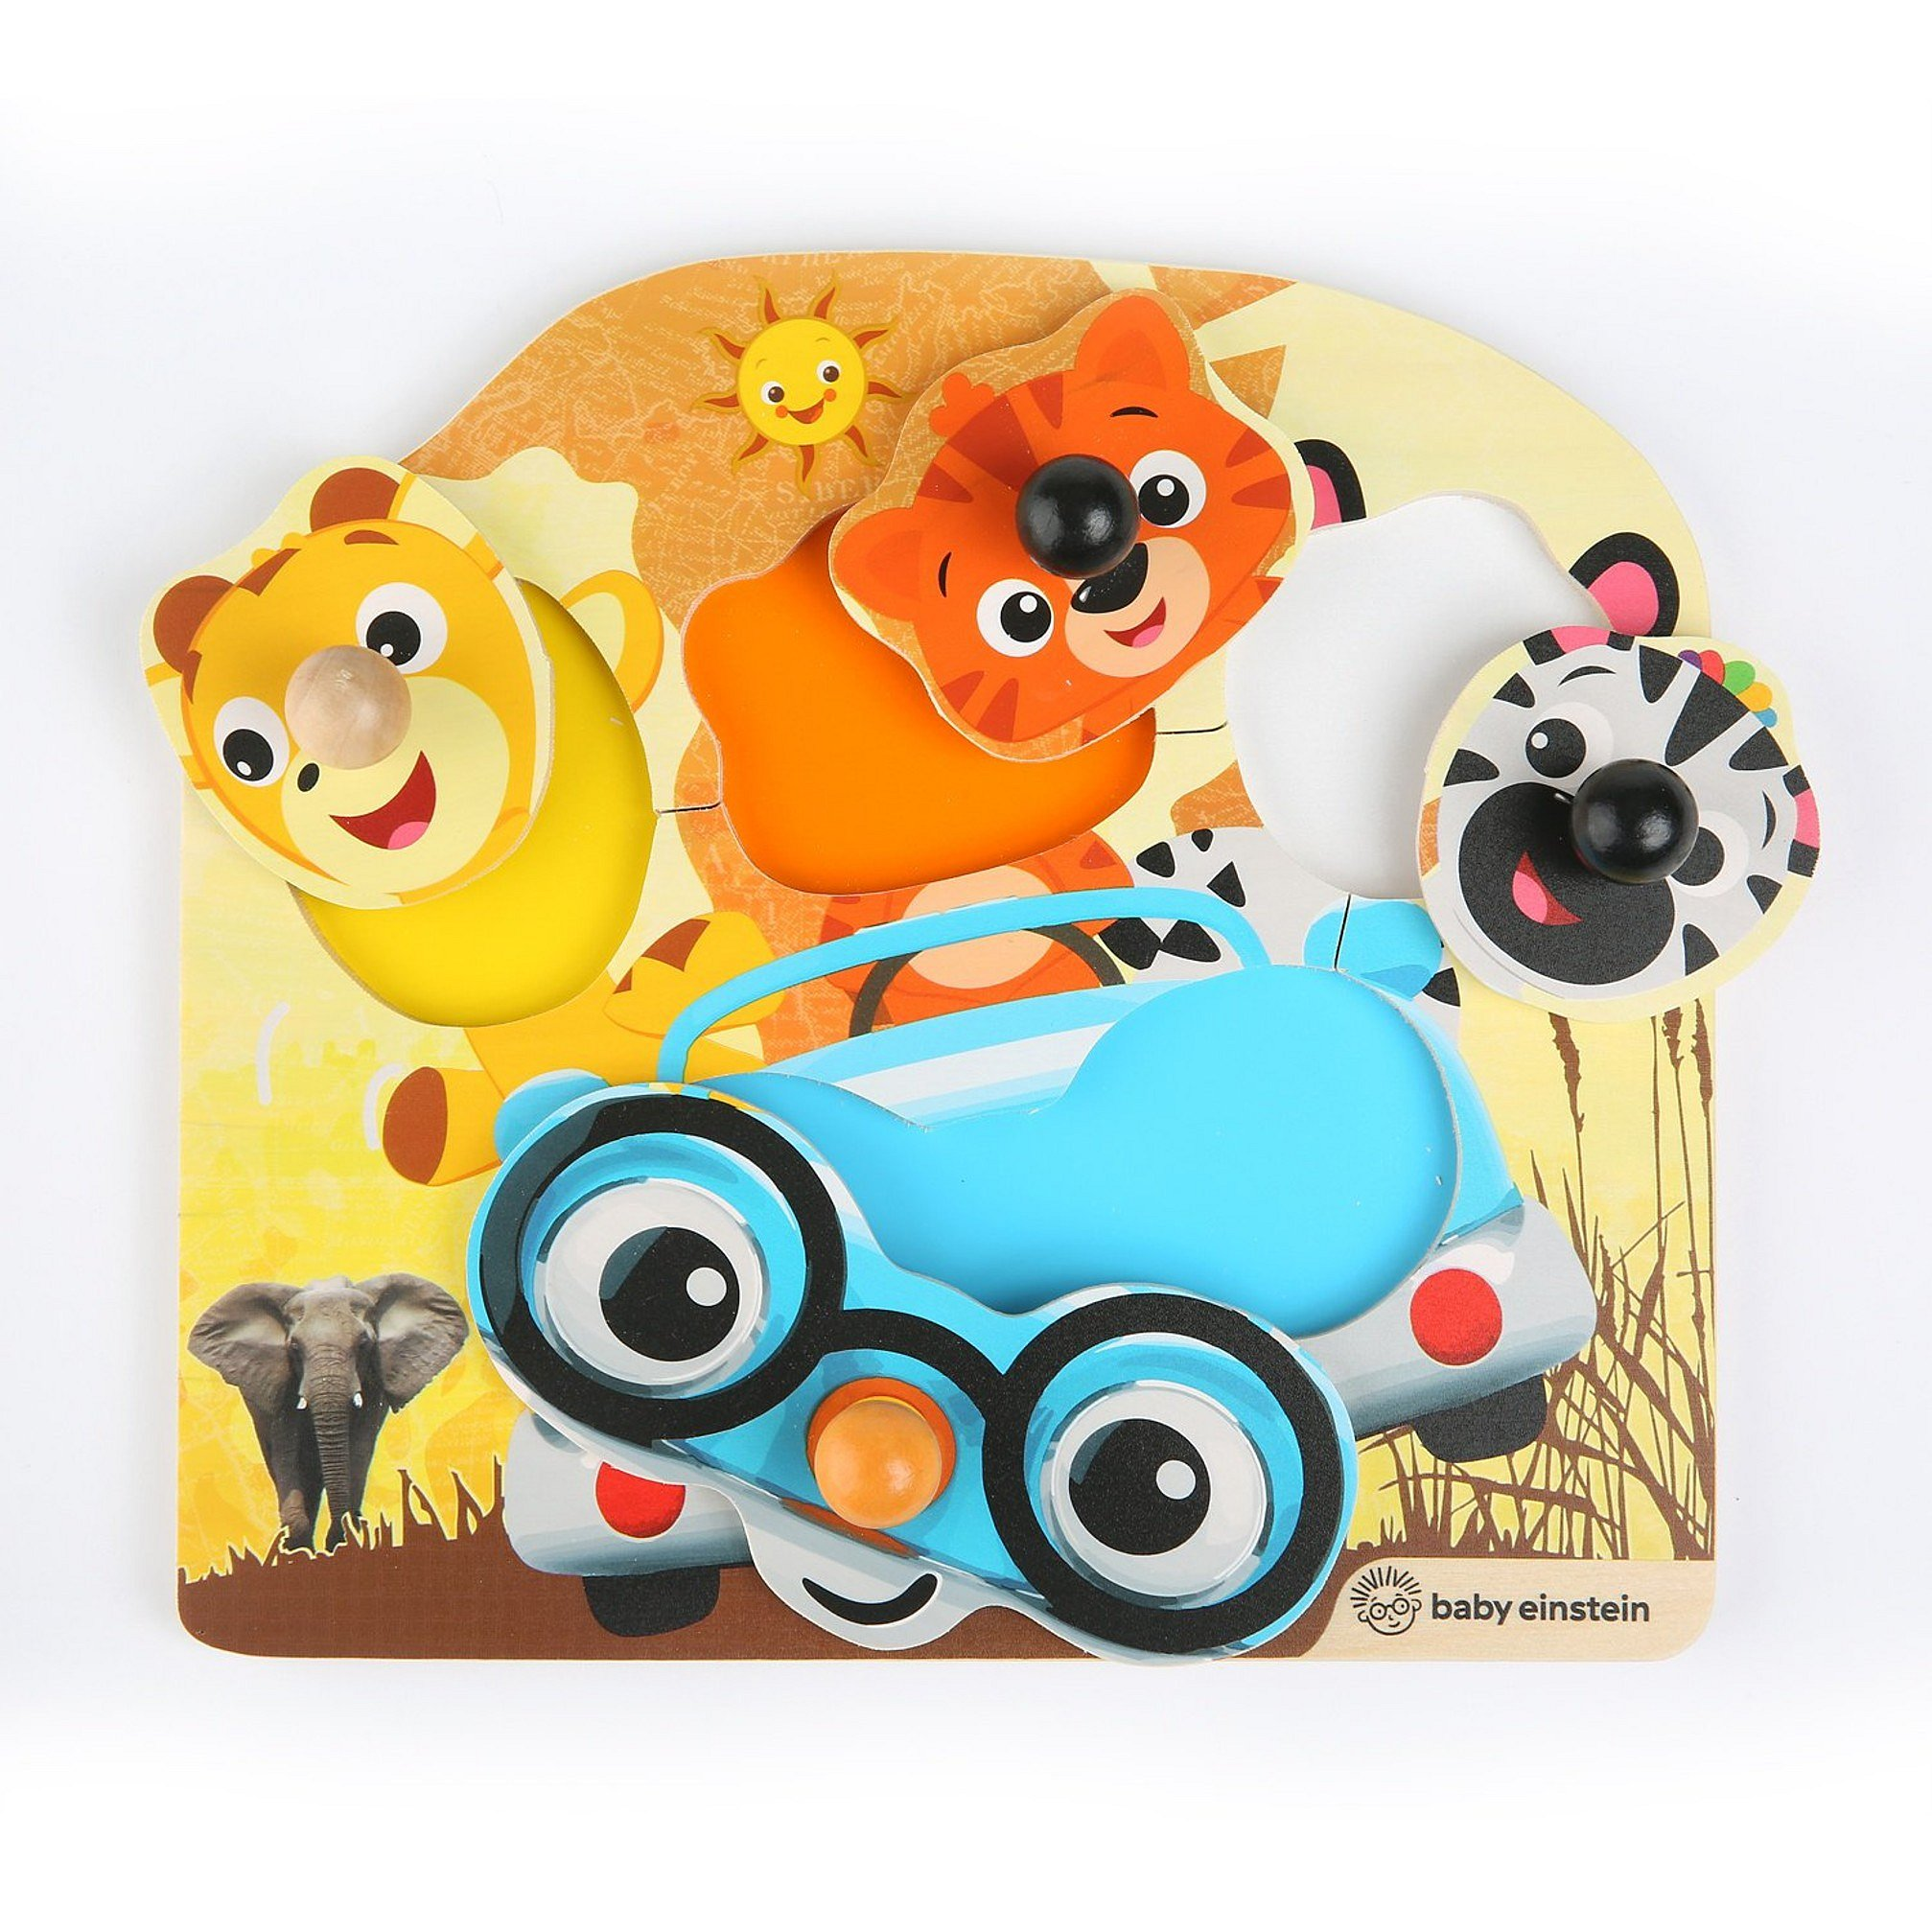 BABY EINSTEIN Hračka dřevěná puzzle Friendy Safari Faces 12m+